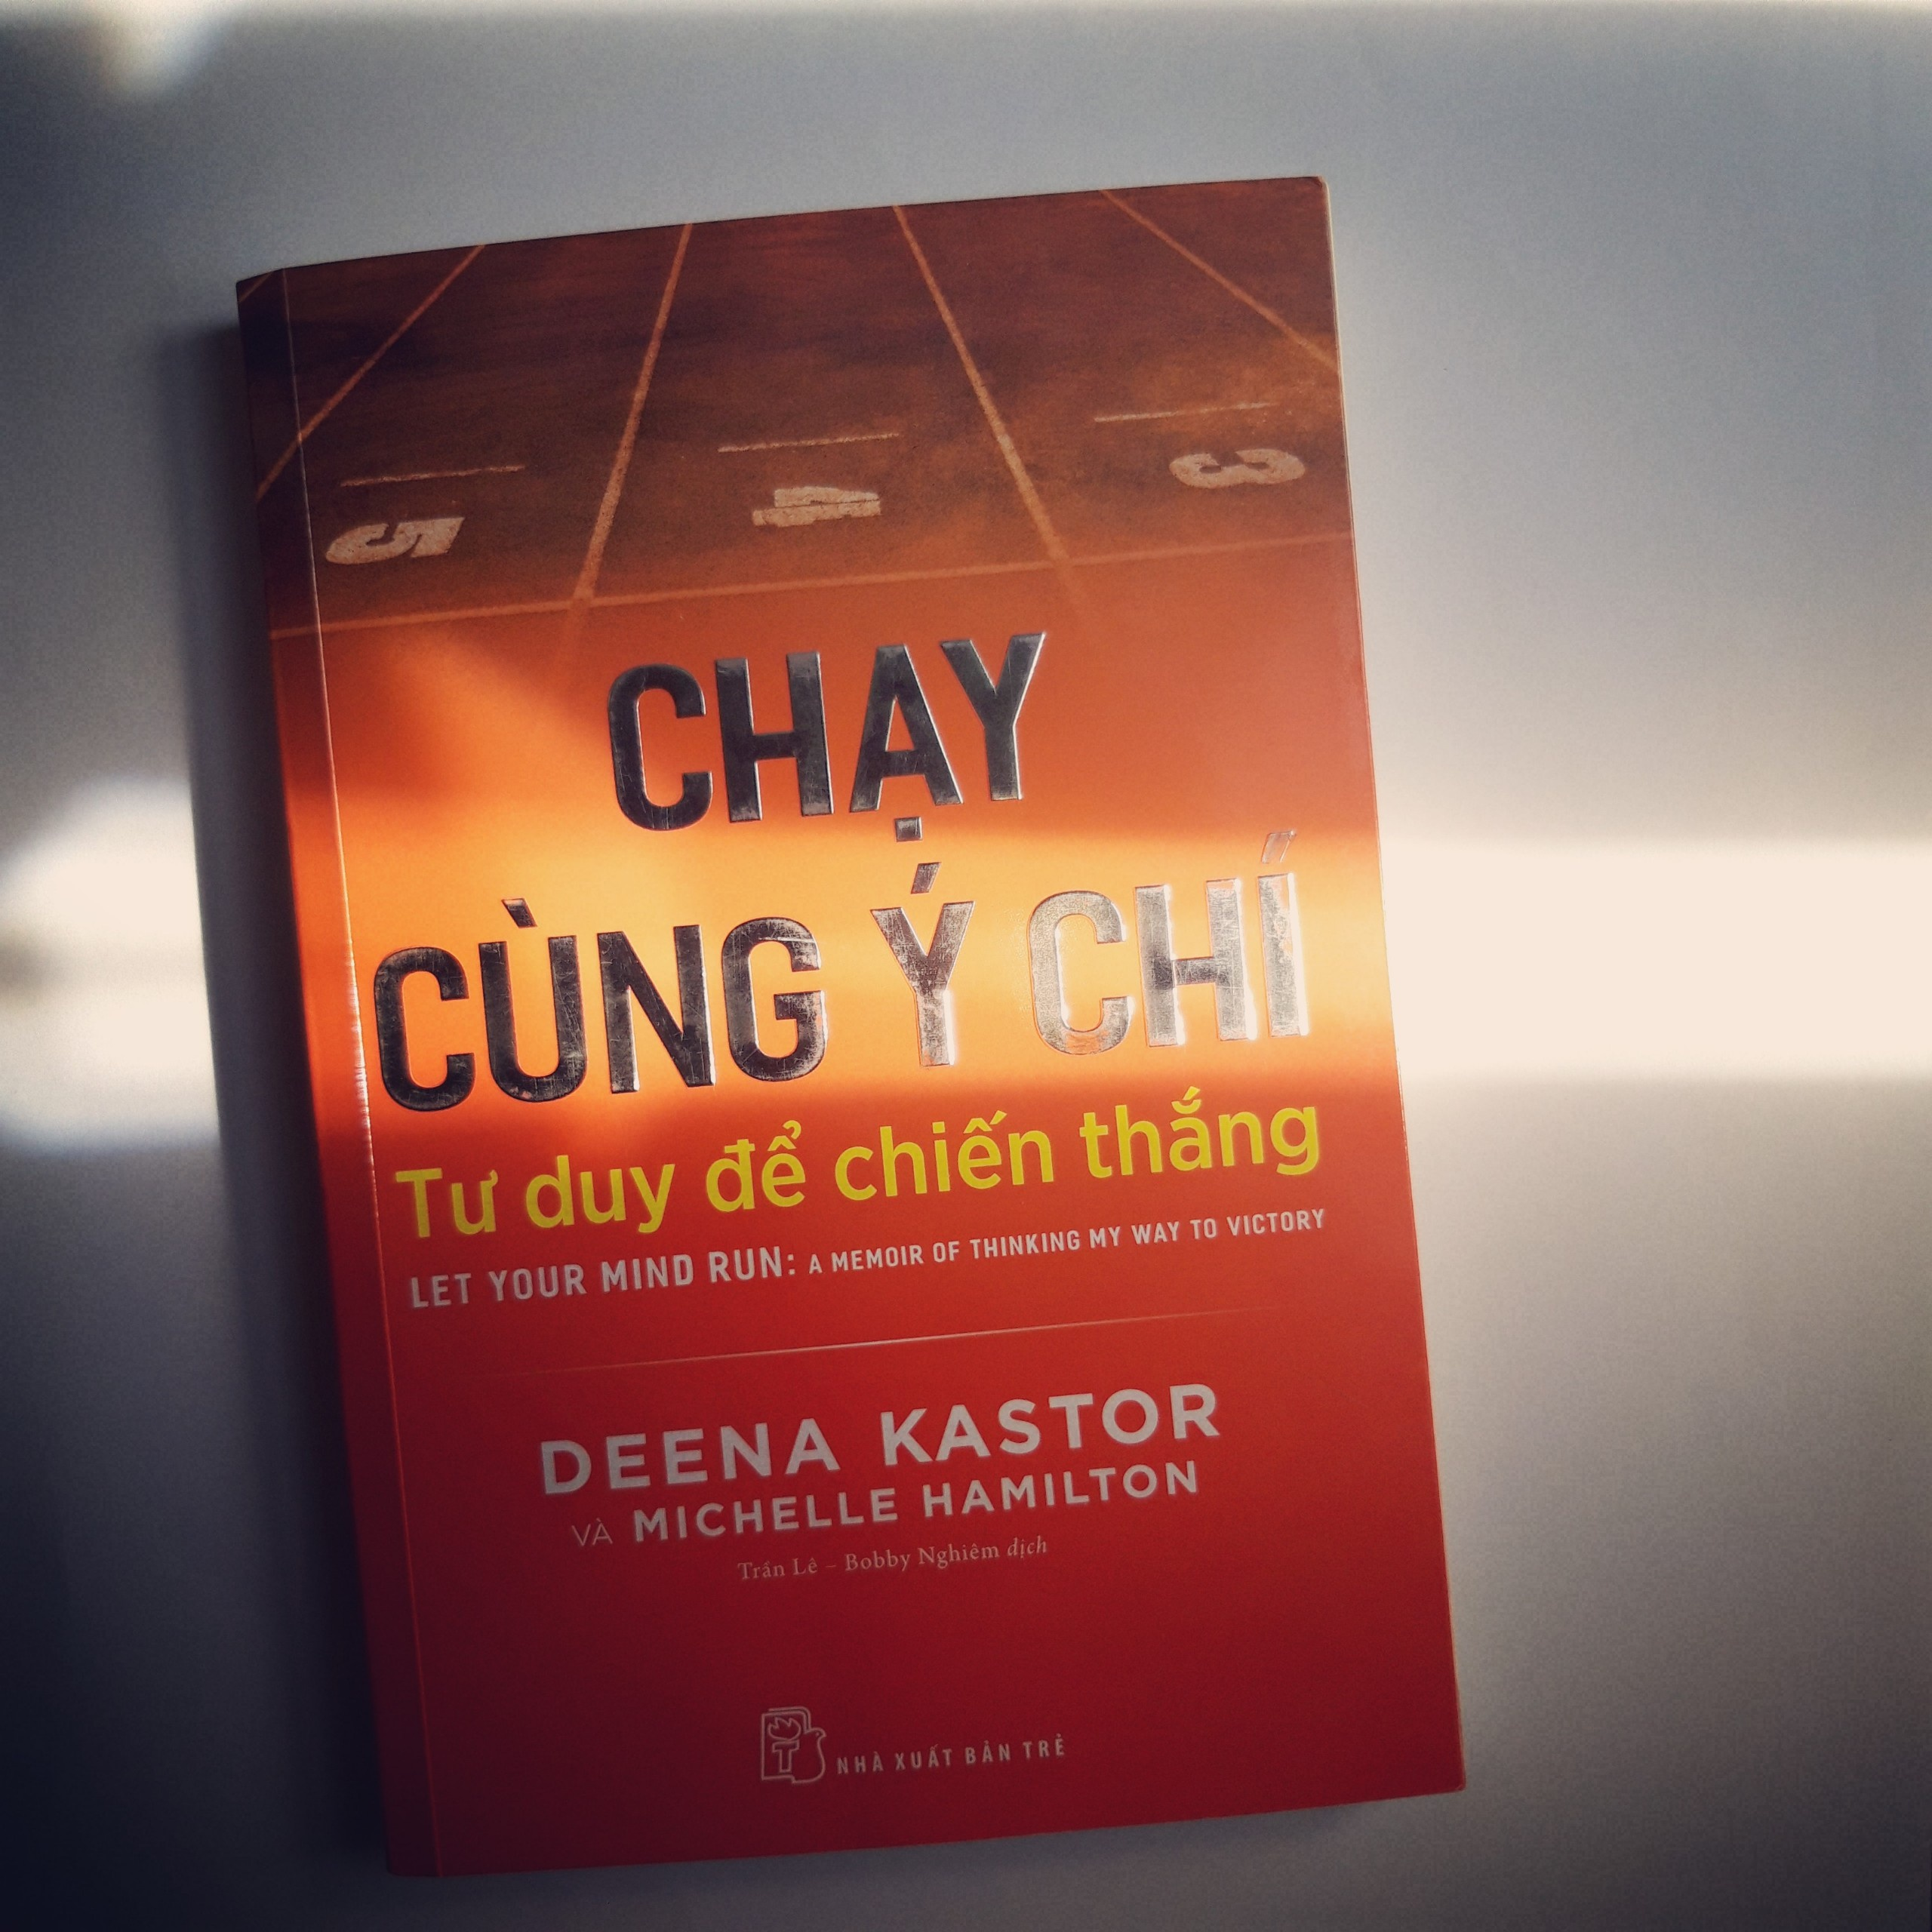 Chay cung y chi anh 1